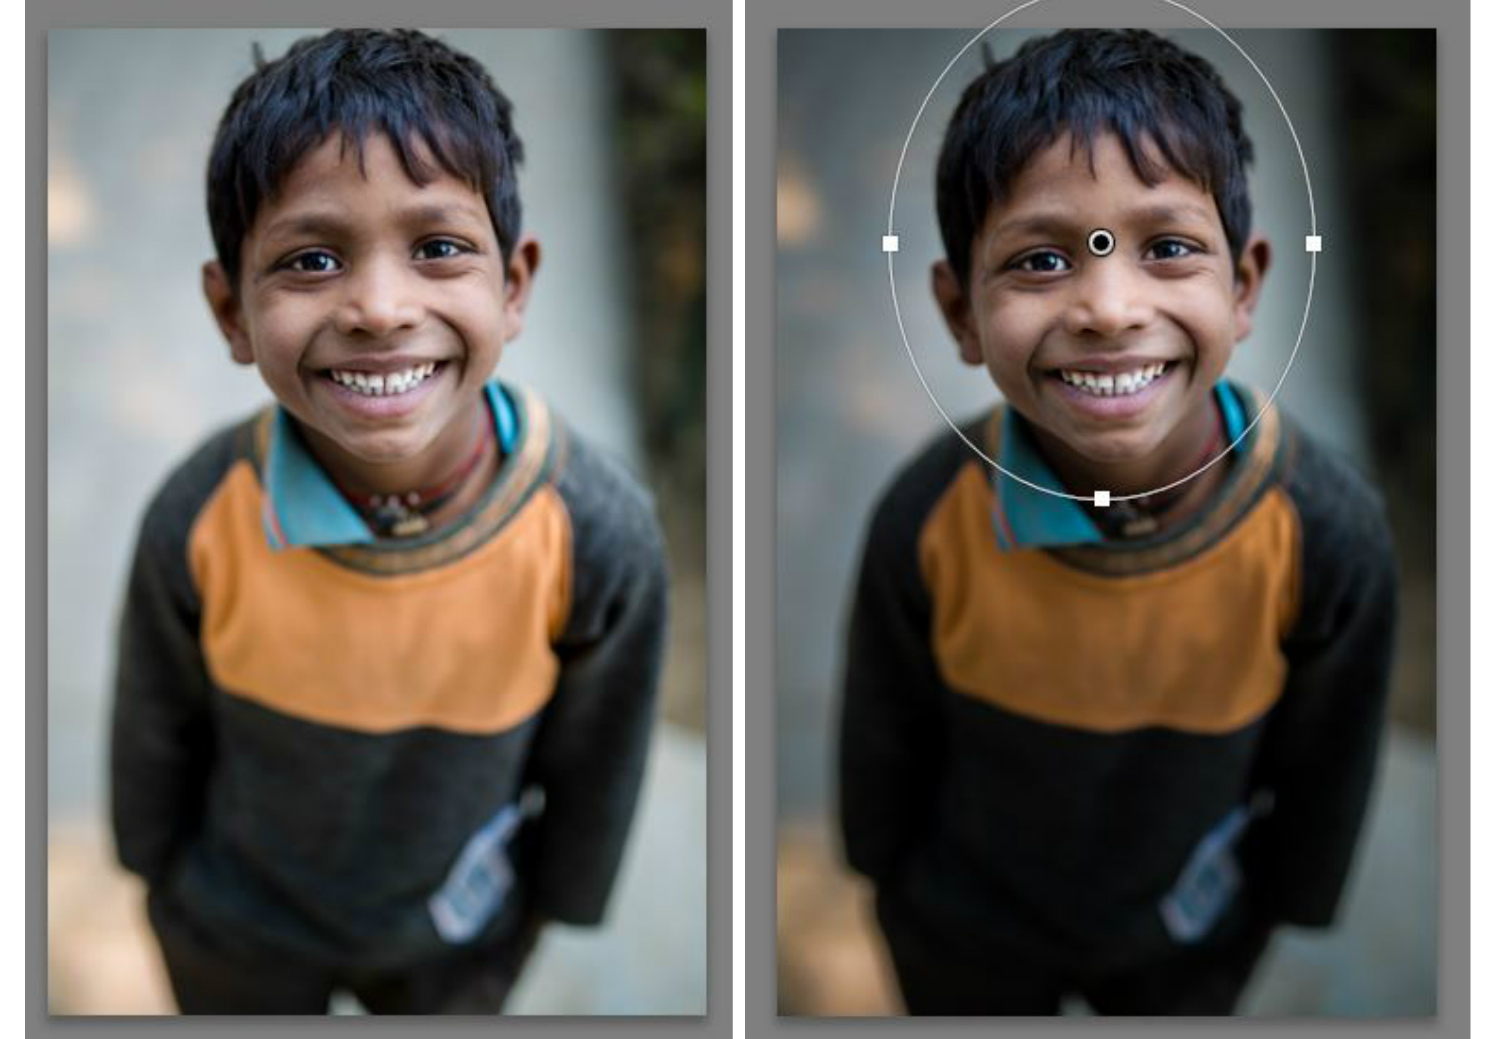 Lightroom local adjustments - radial filter image of an Indian boy